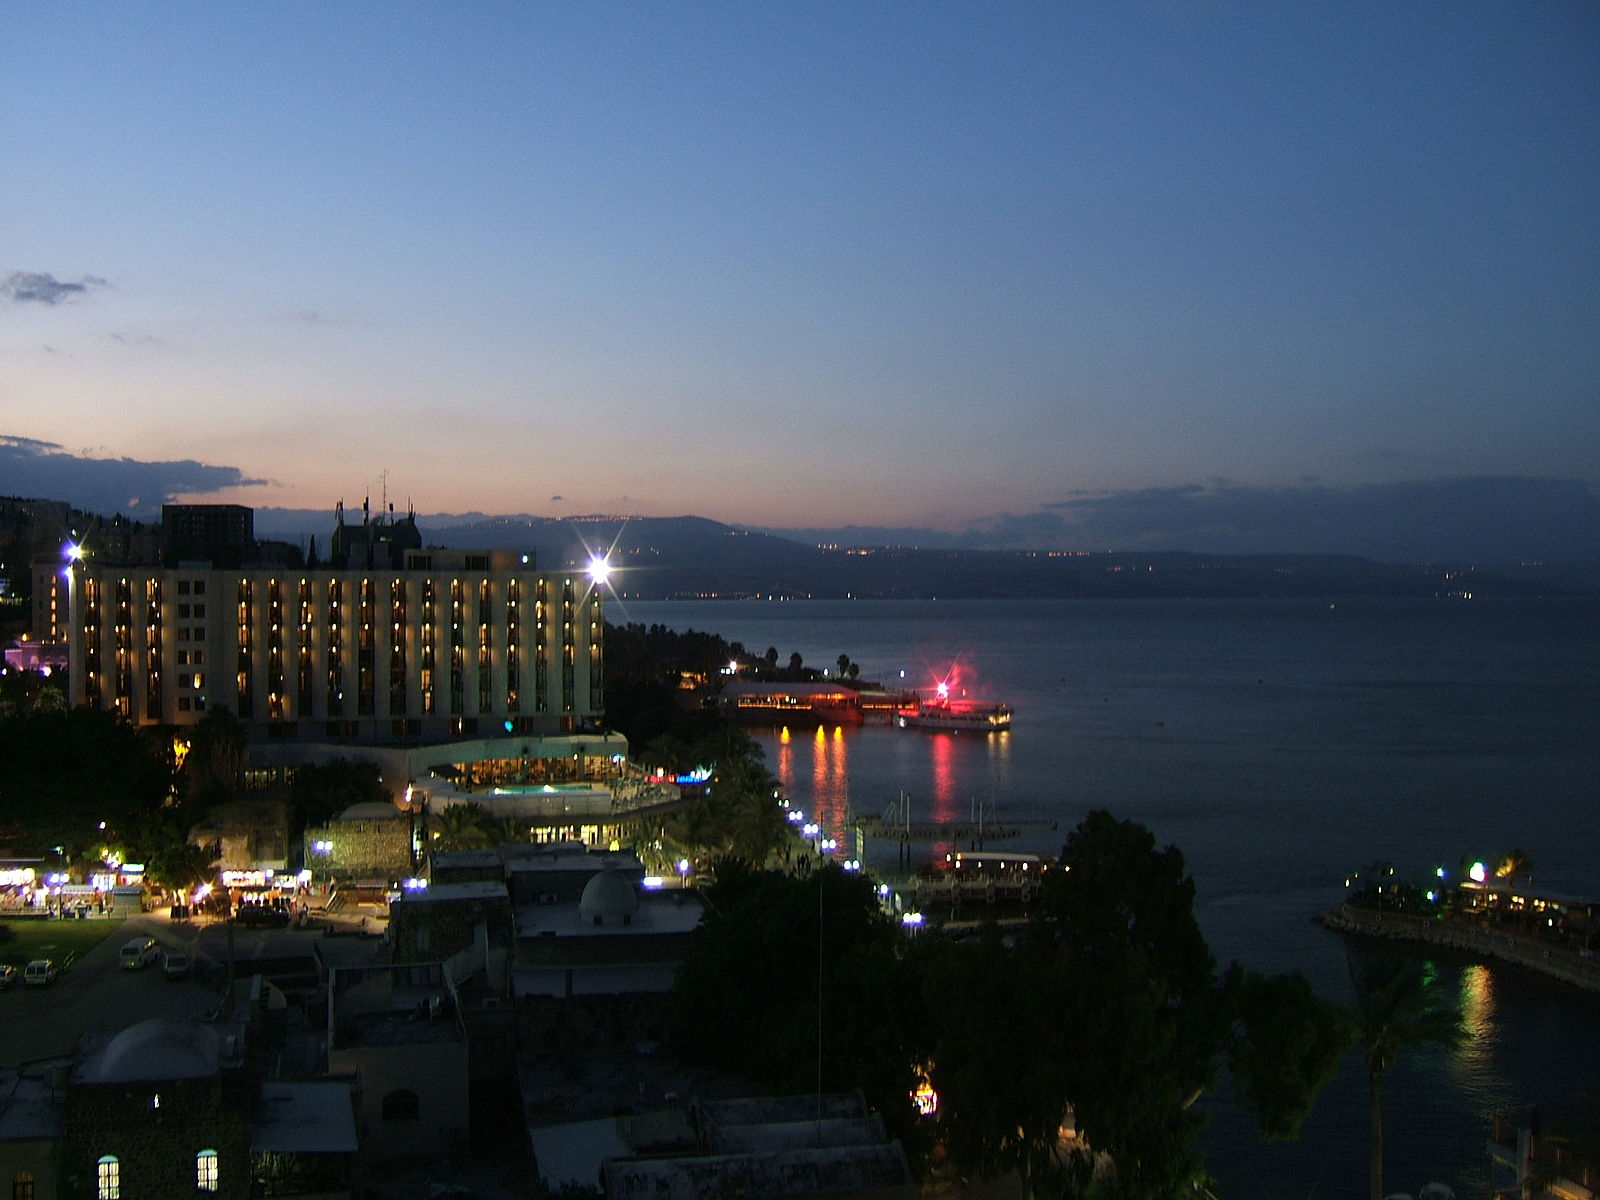 Tiberias at night, with lake